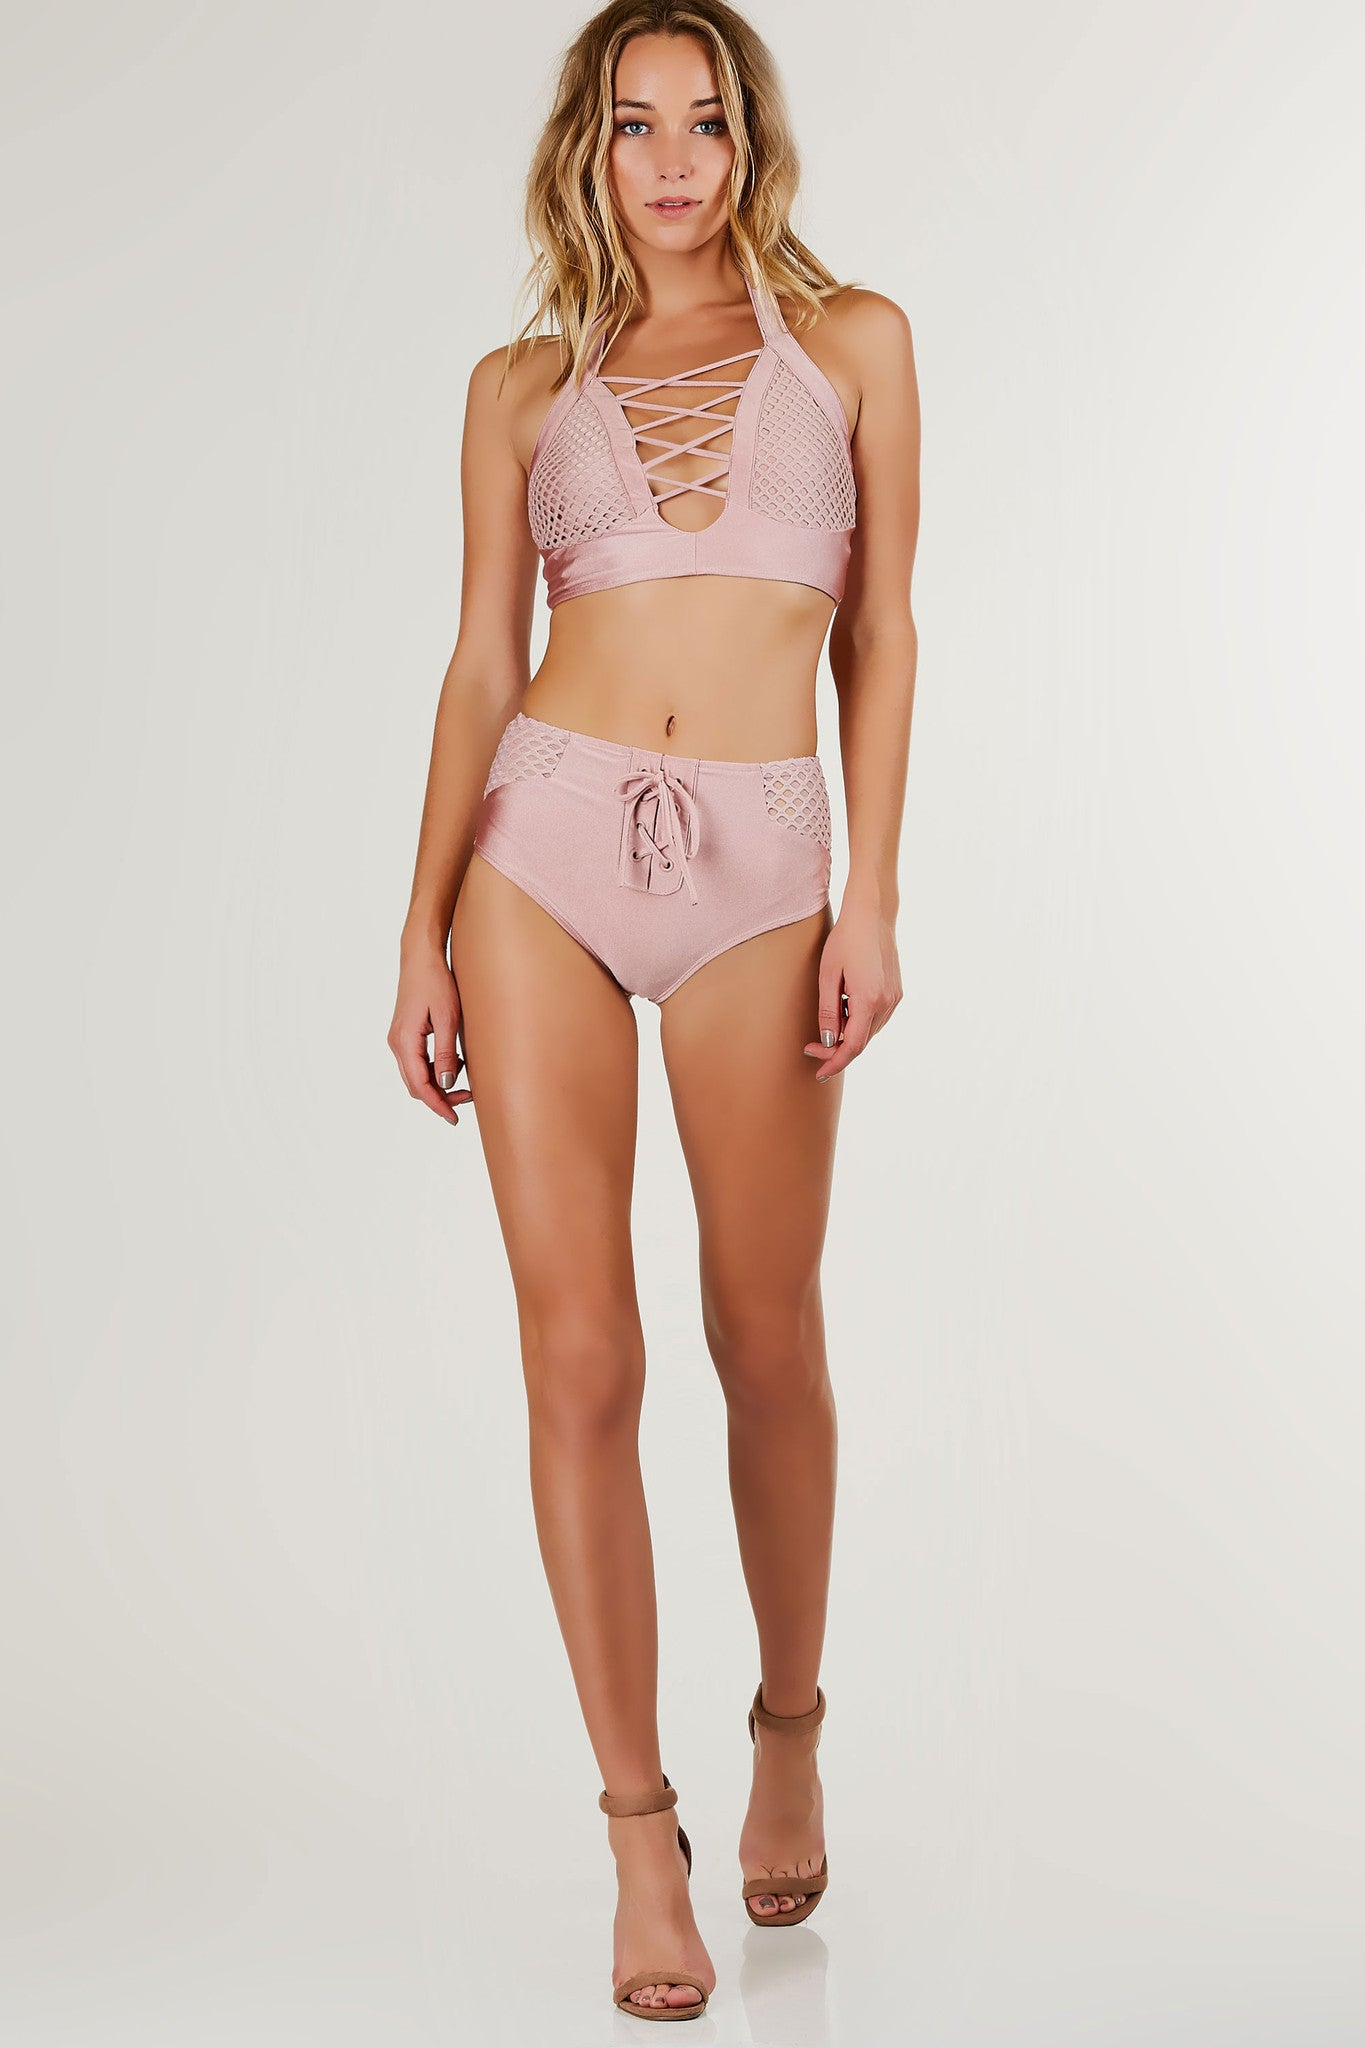 Stay breezy in the Lace Up Mesh Bikini that features a slip-on, low plunging halter, mesh panels, and faux lace up detailing. The bottoms feature a slip-on, high waisted, high cheeky cut, and front lace up detailing.